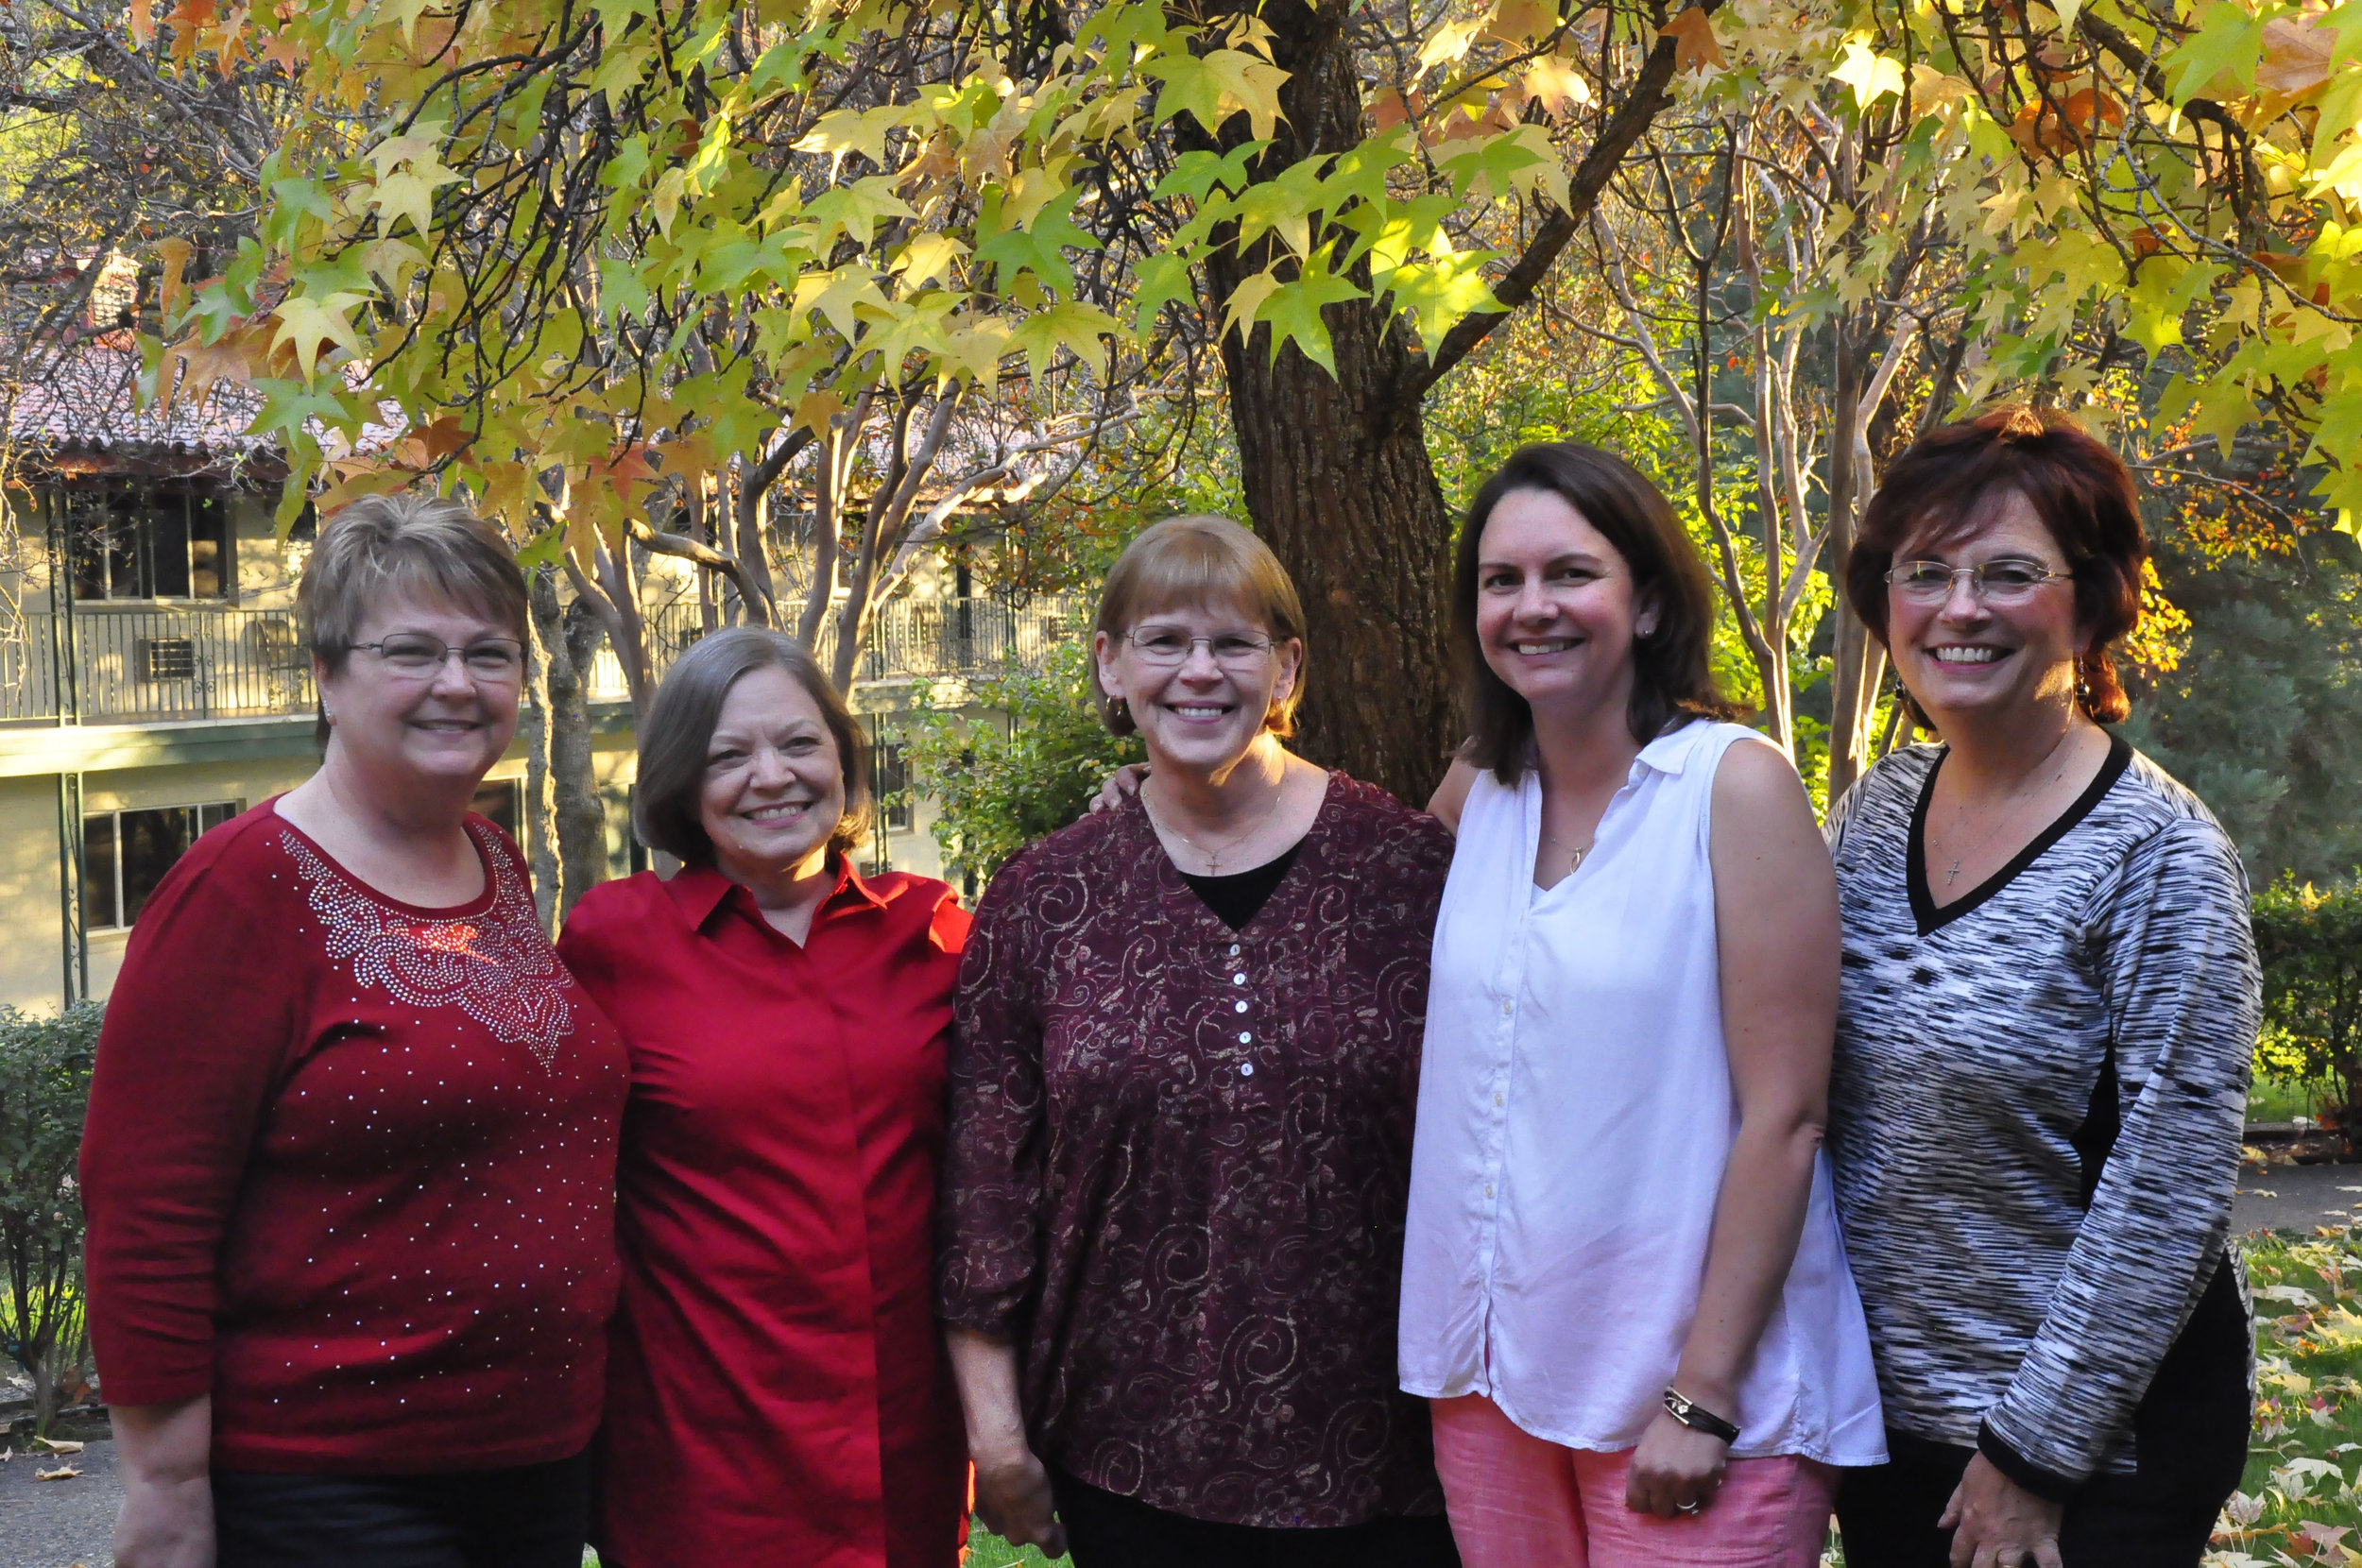 Northern Calif. Springs Team - 10th Anniversary Celebration (2016): Darlene Derby, Betsy Stowe, Elaine Russell, Christy Wold, Luann Budd